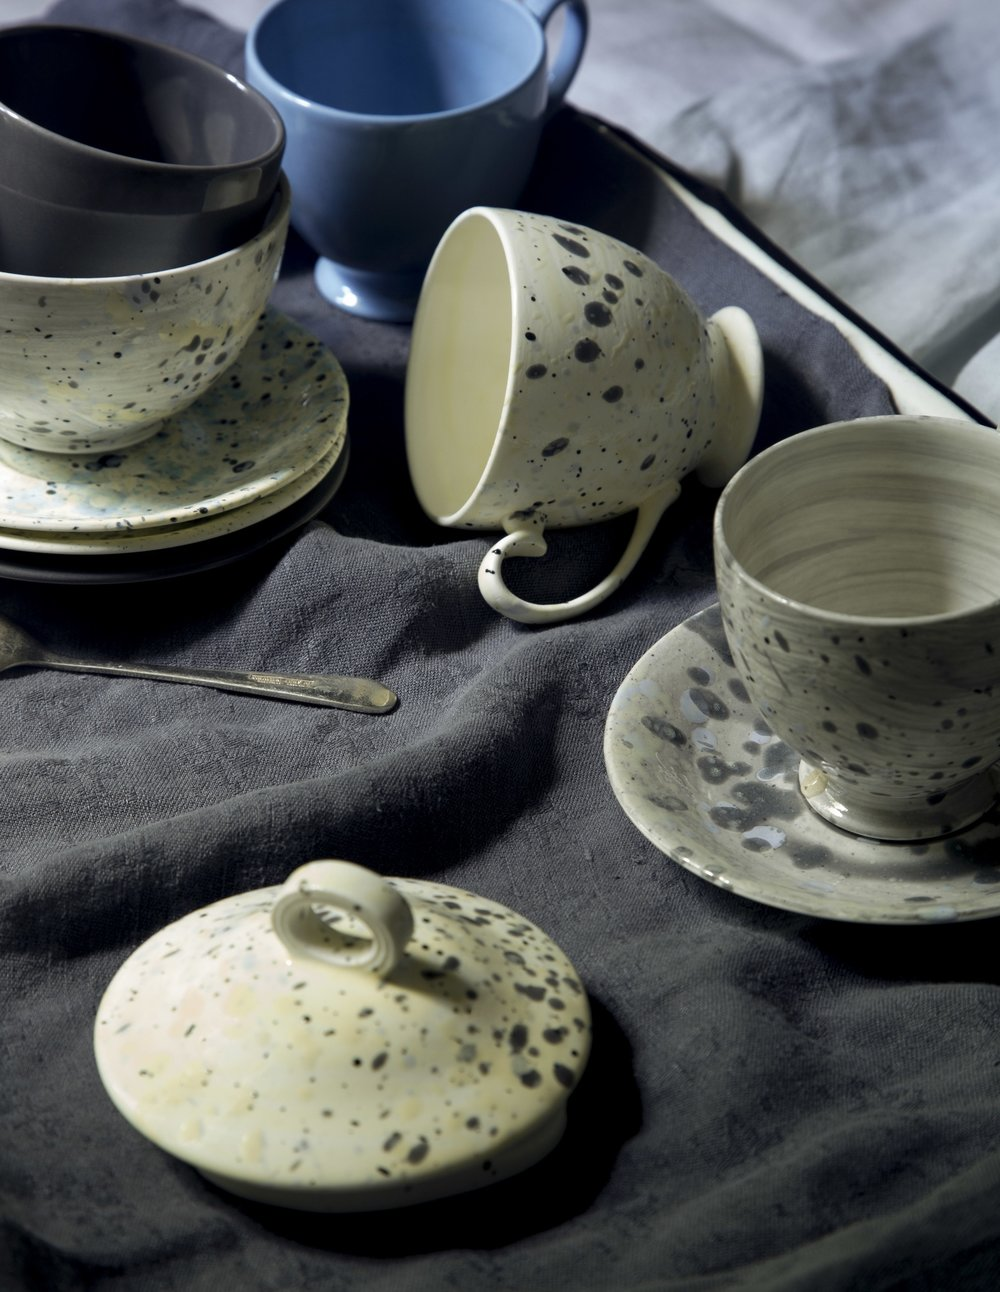 The glaze splattered teacups.